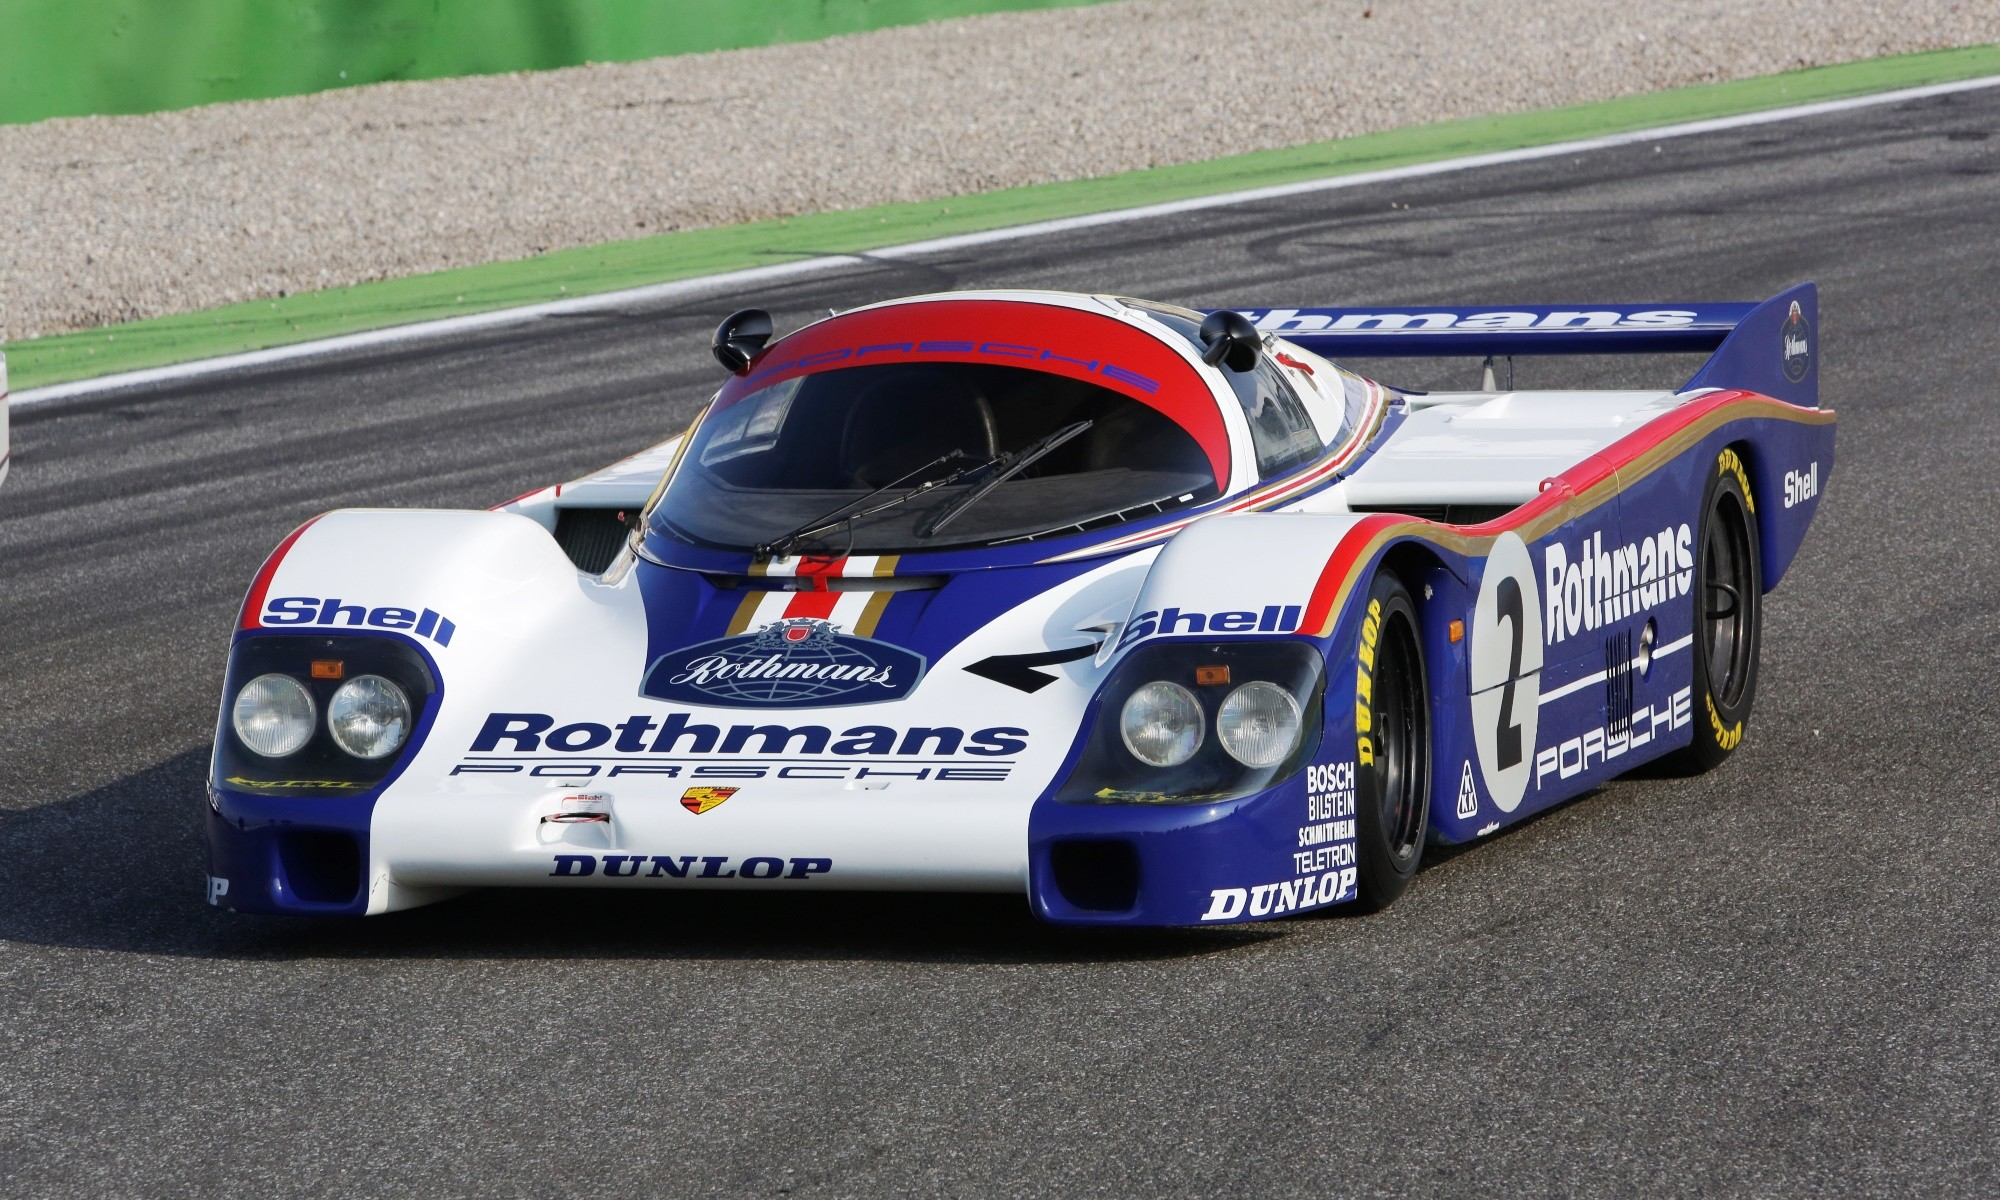 The Porsche 956 in iconic Rothmans livery